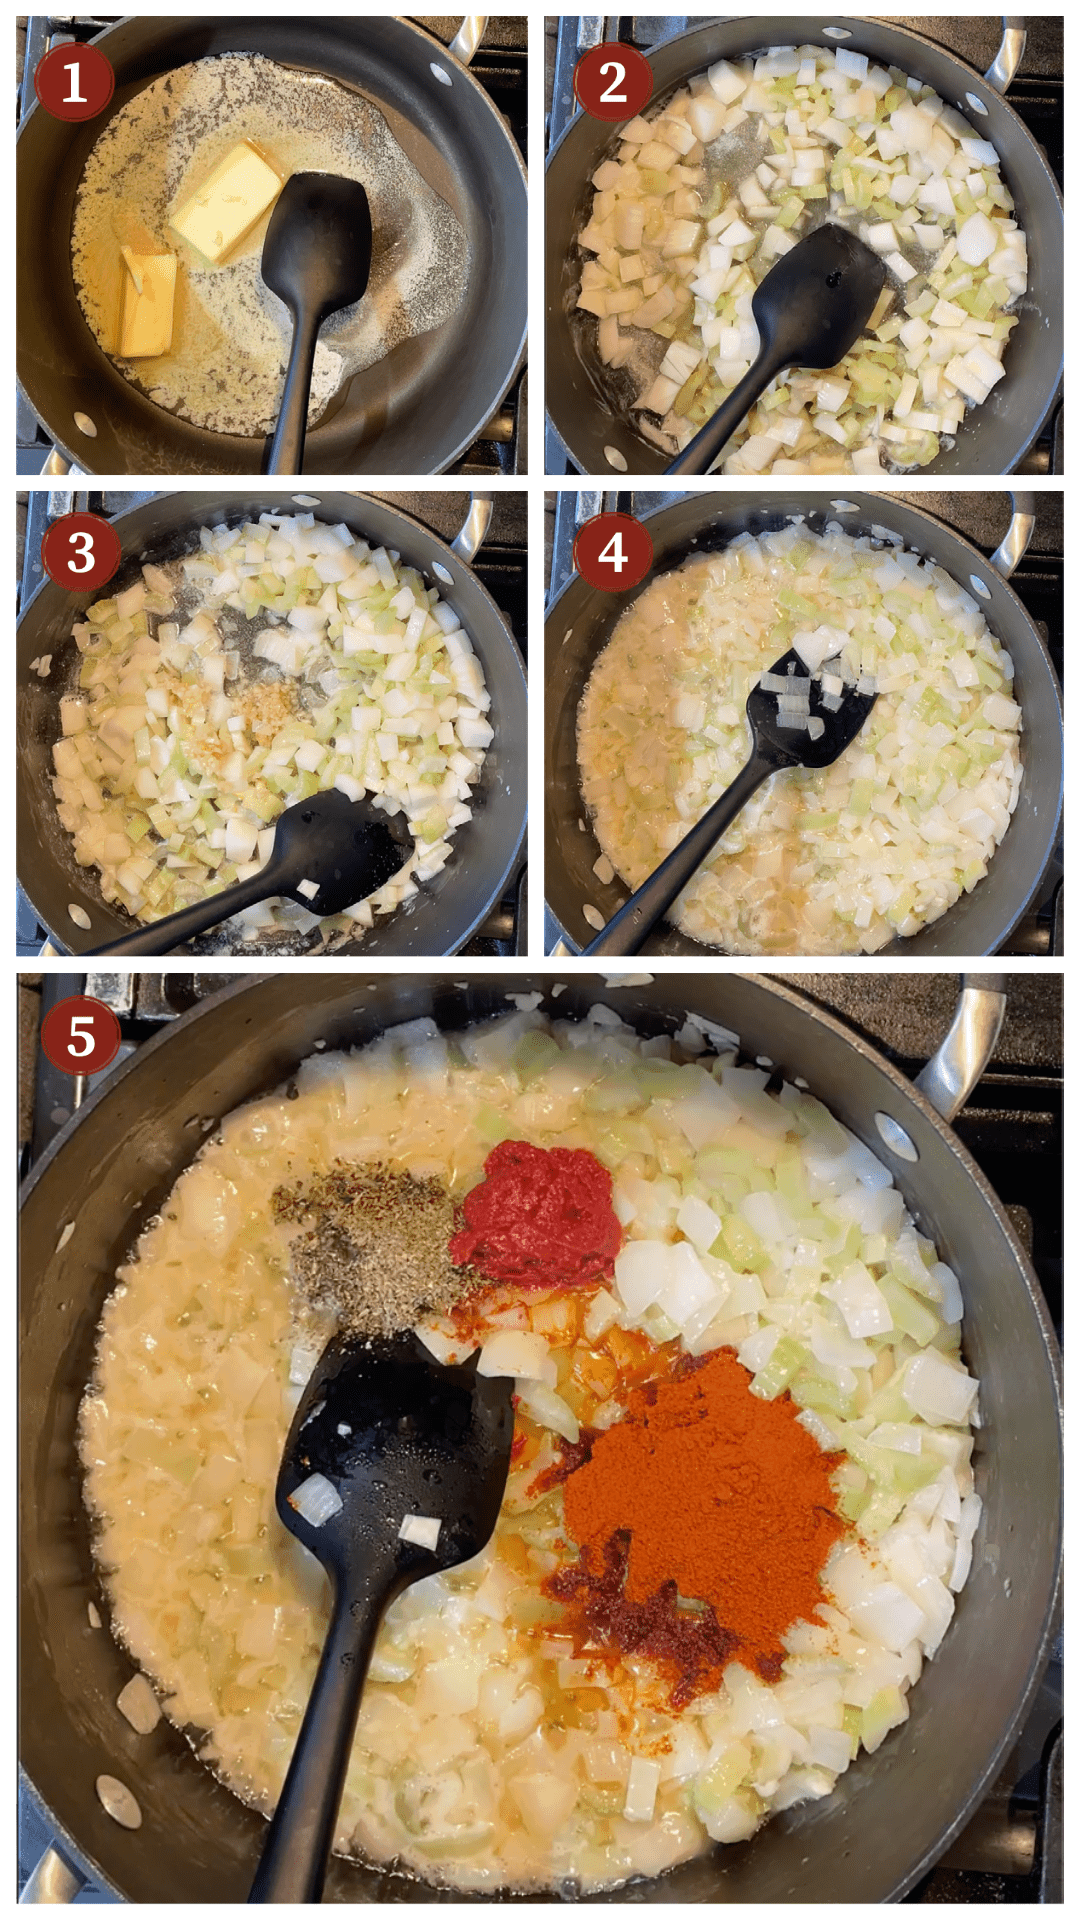 A collage of images showing how to make shrimp creole, steps 1 - 5.